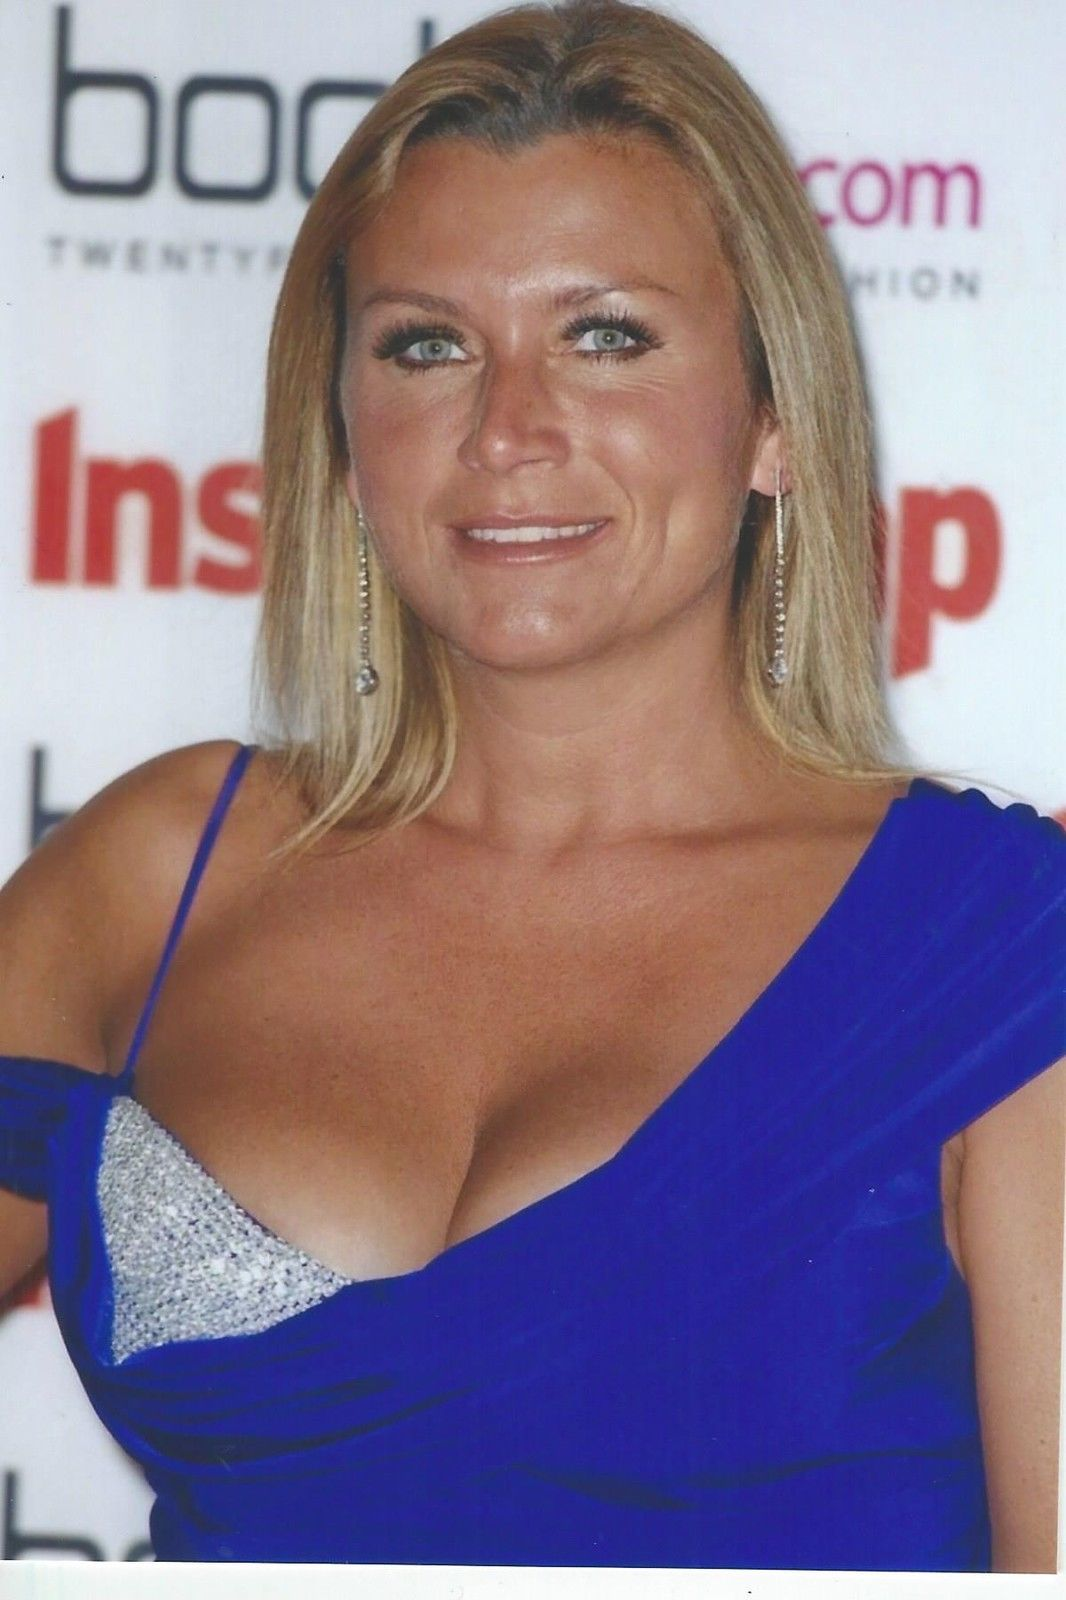 Tricia Penroses Leaked Cell Phone Pictures